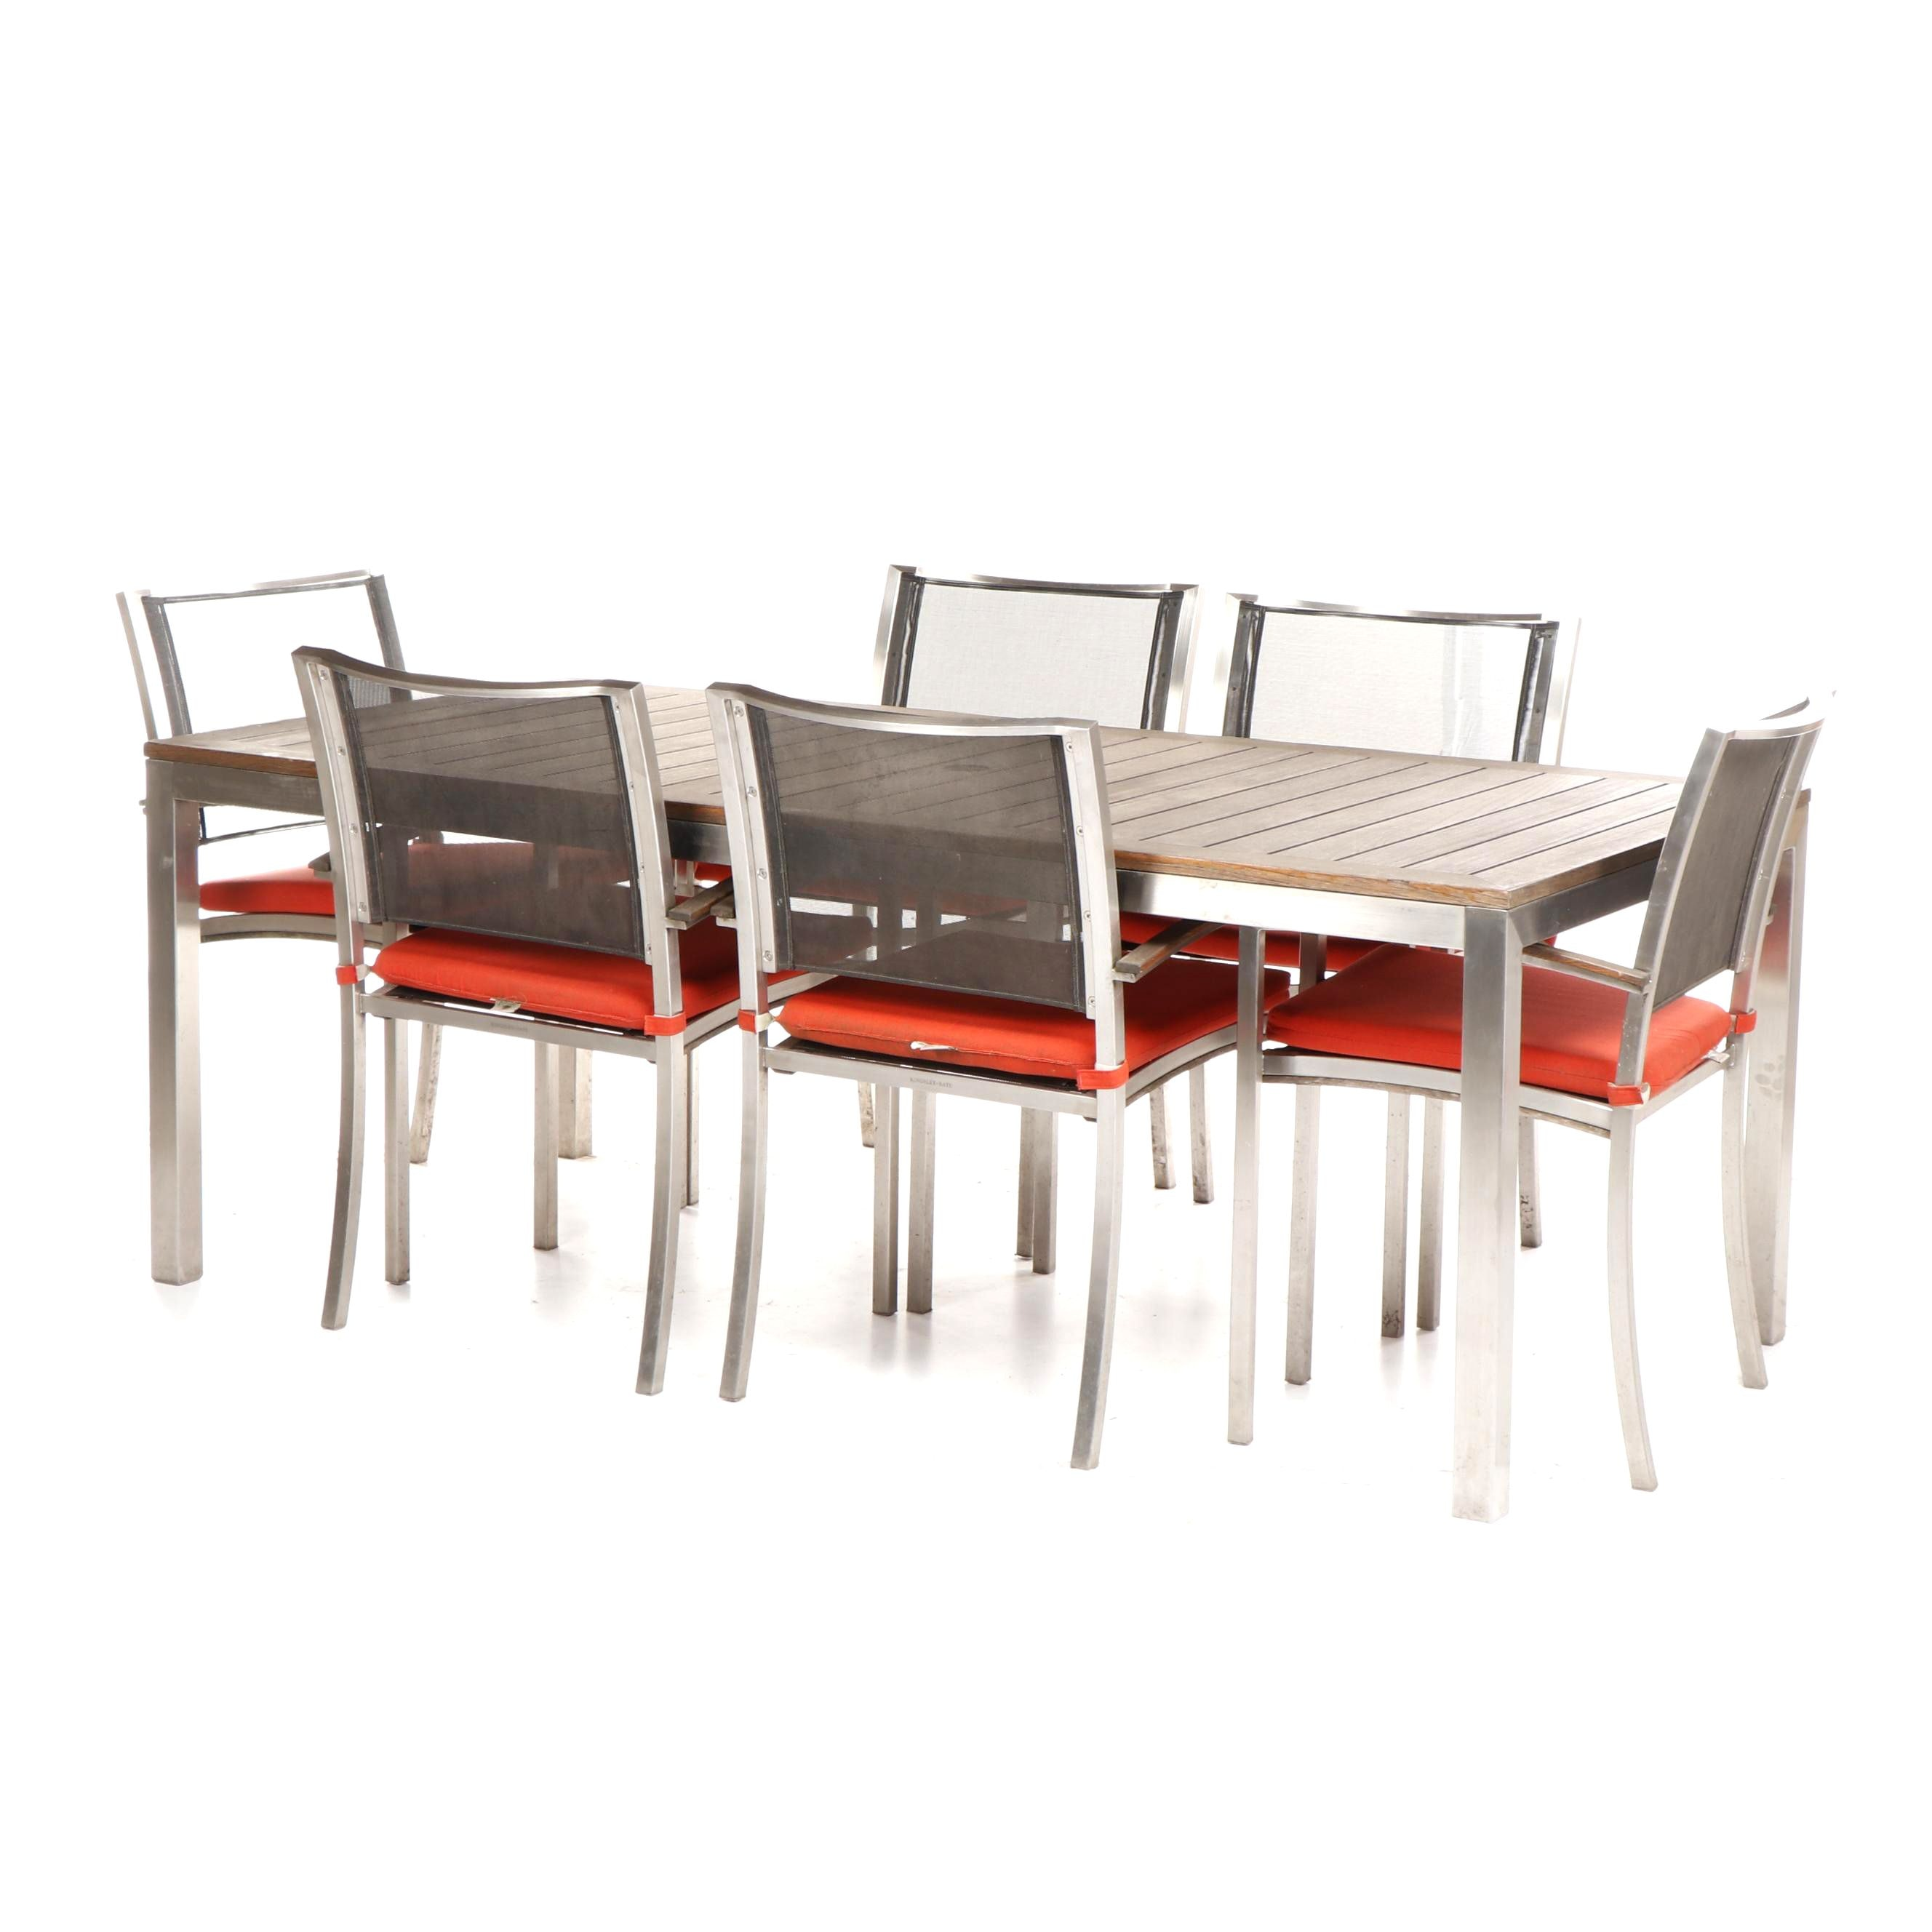 Kingsley Bate Outdoor Walnut Dining Table and Stacking Chairs